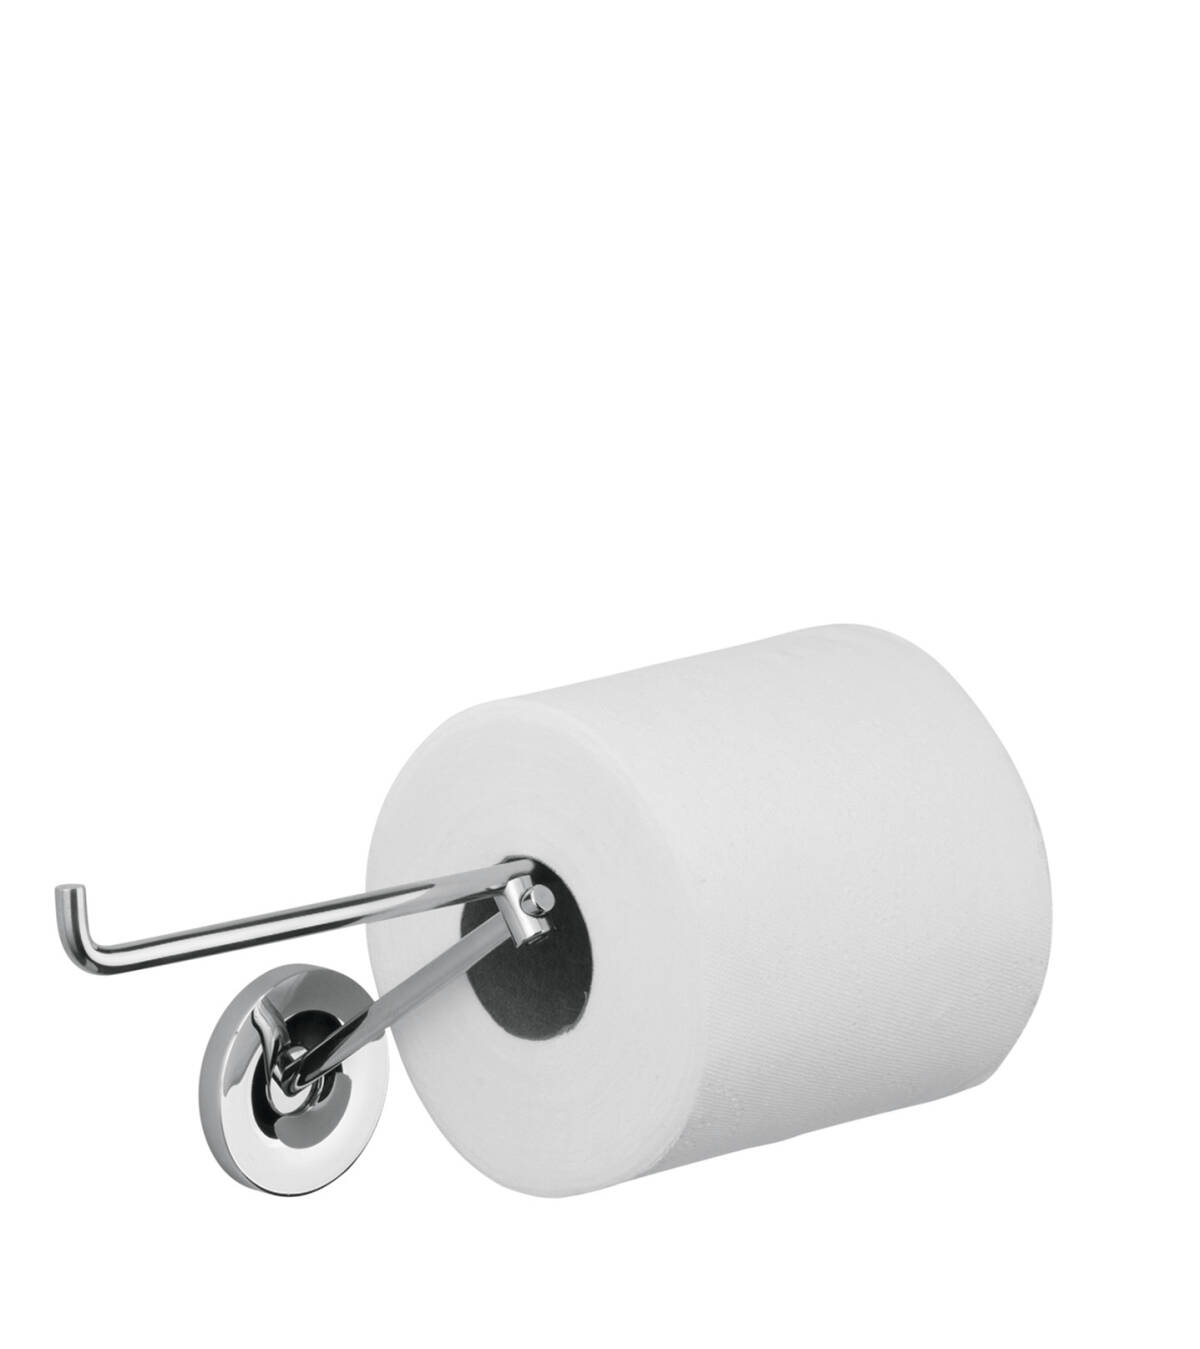 Roll holder, Chrome, 40836000